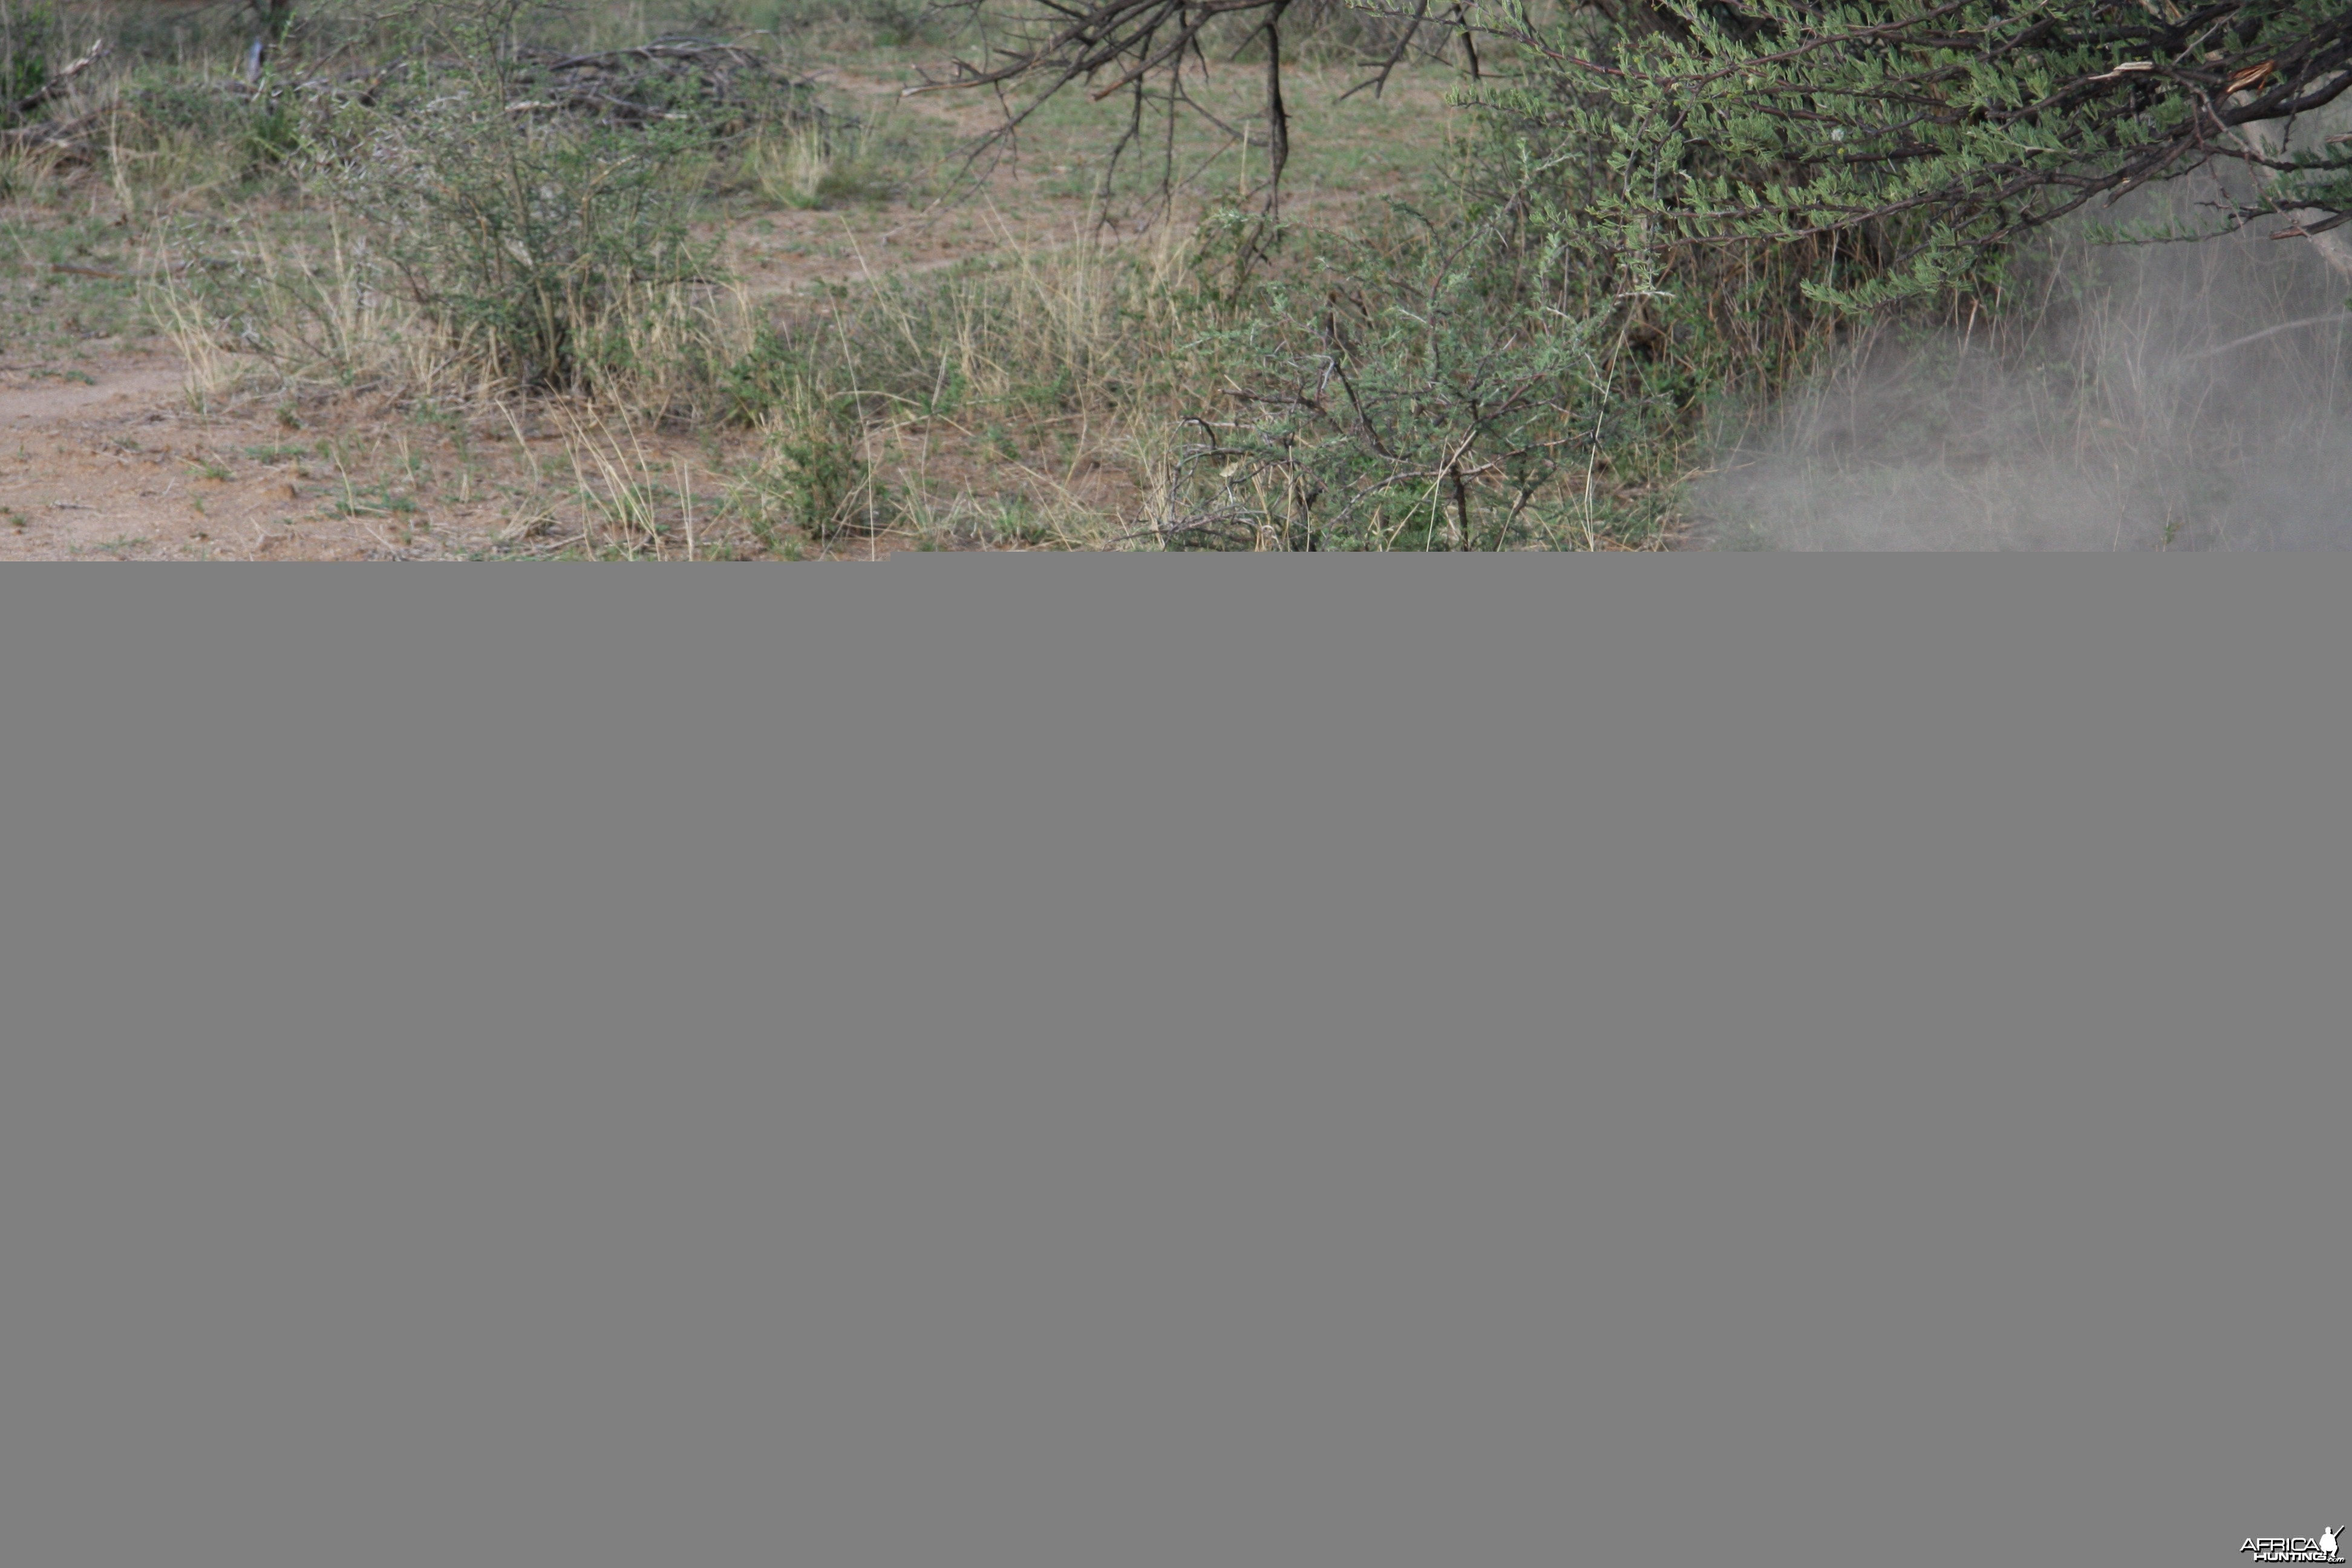 Black Mamba in Namibia